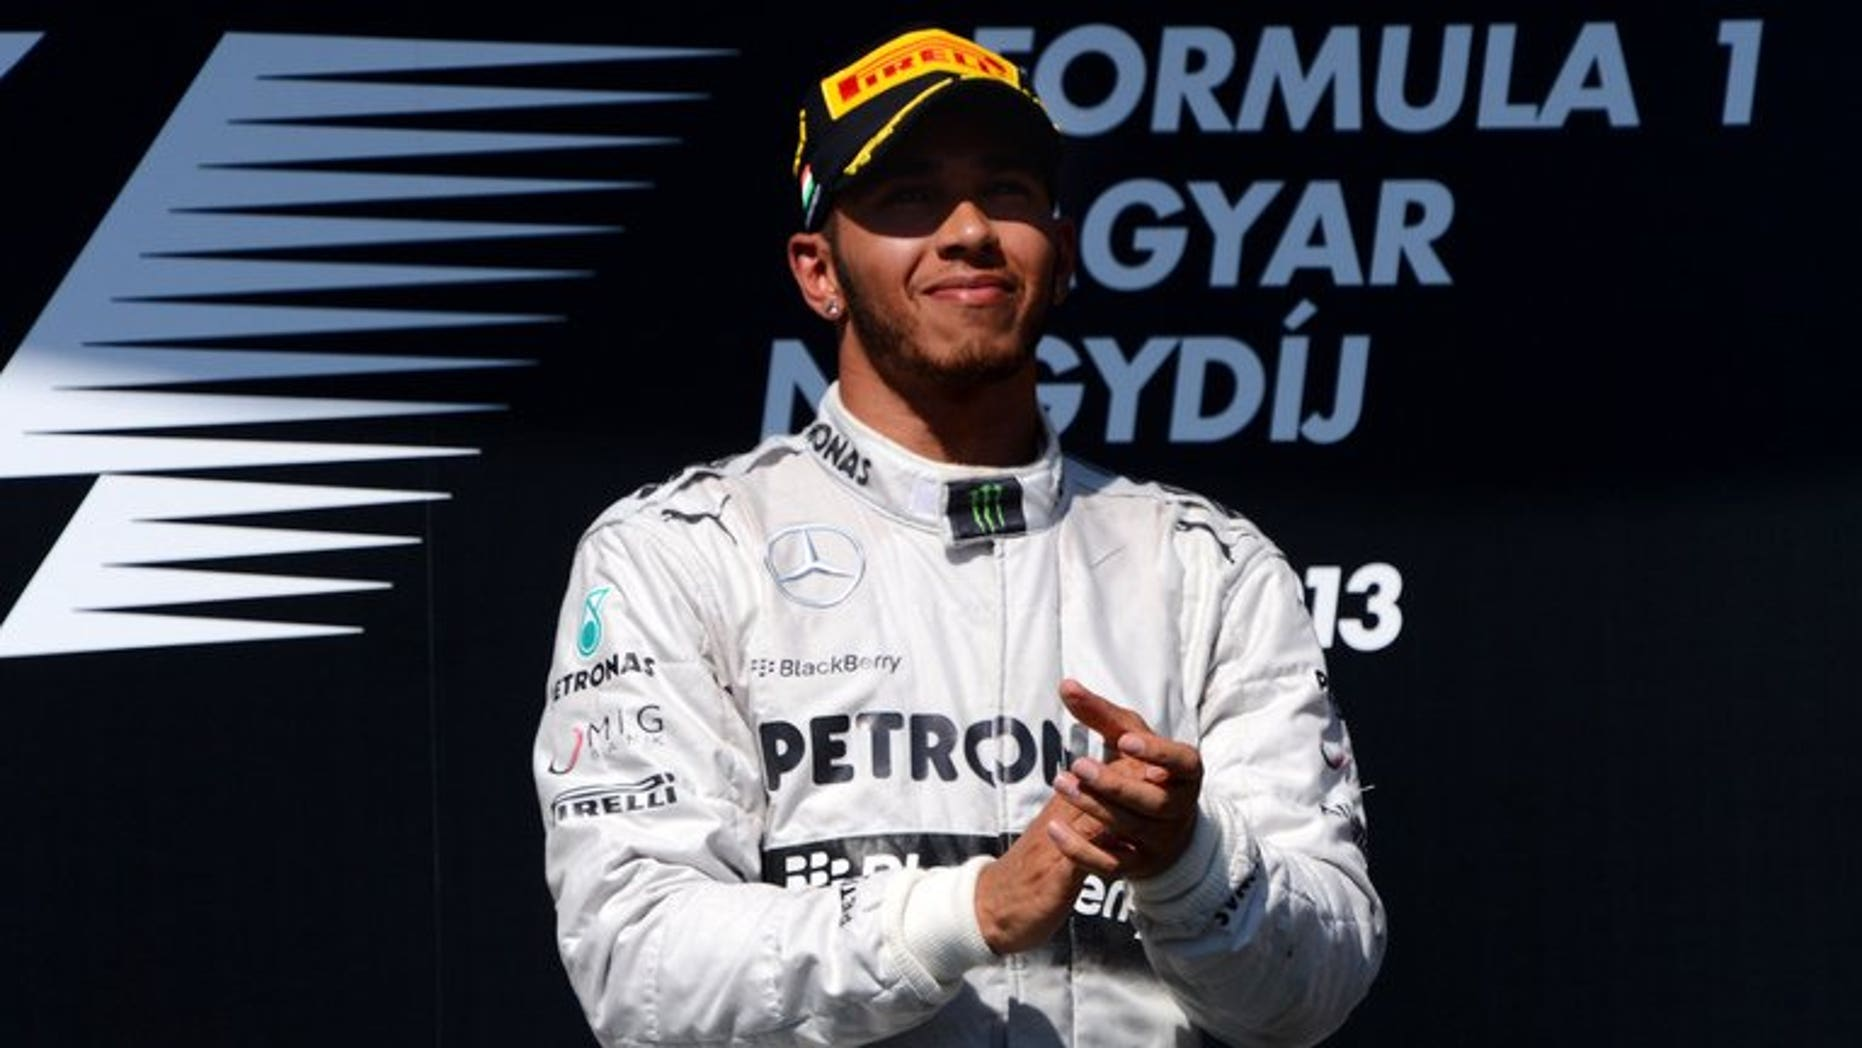 Mercedes' British driver Lewis Hamilton celebrates on the podium at the Hungaroring circuit in Budapest on July 28, 2013. Hamilton's faith in Mercedes was repaid by a victory that will give him the momentum to mount a title bid in the second half of the Formula One season, according to team chief Ross Brawn.